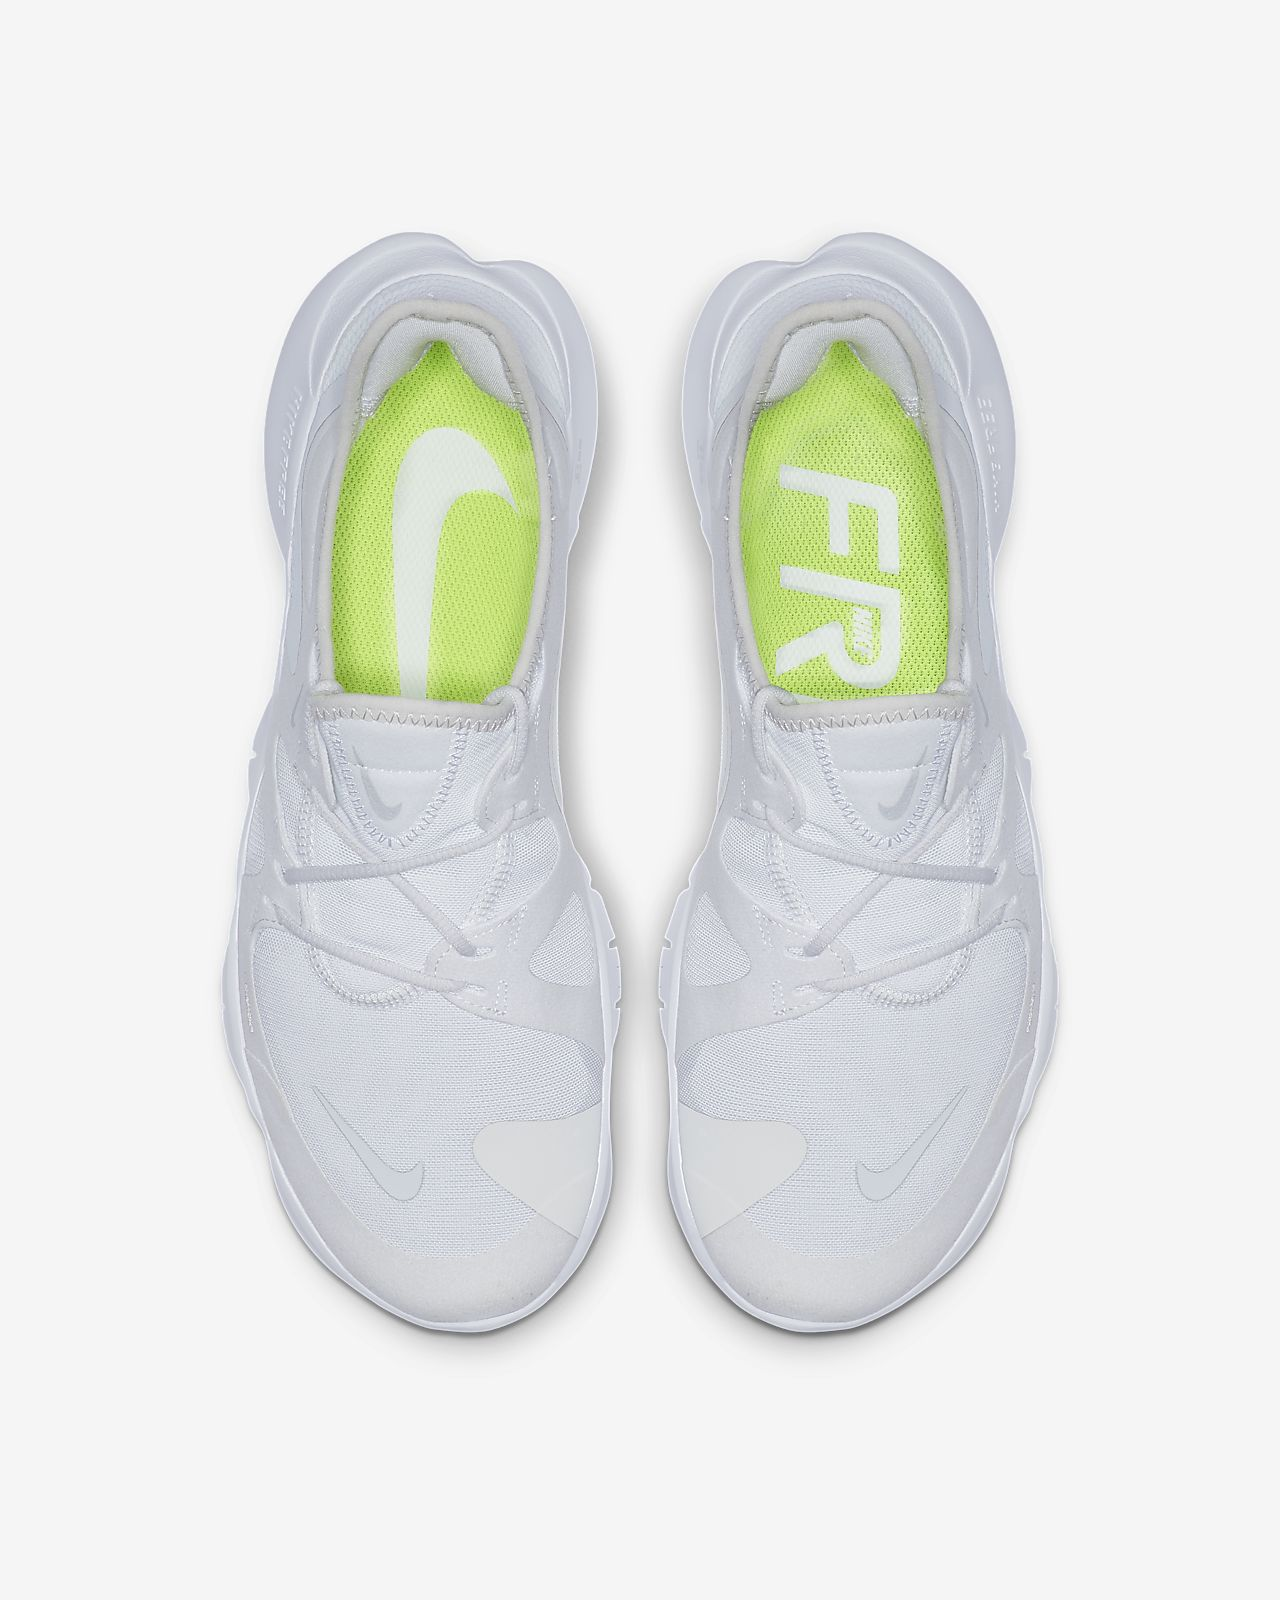 Nike Free 3.0 Homme Nike Football France Grande Surprise Tn